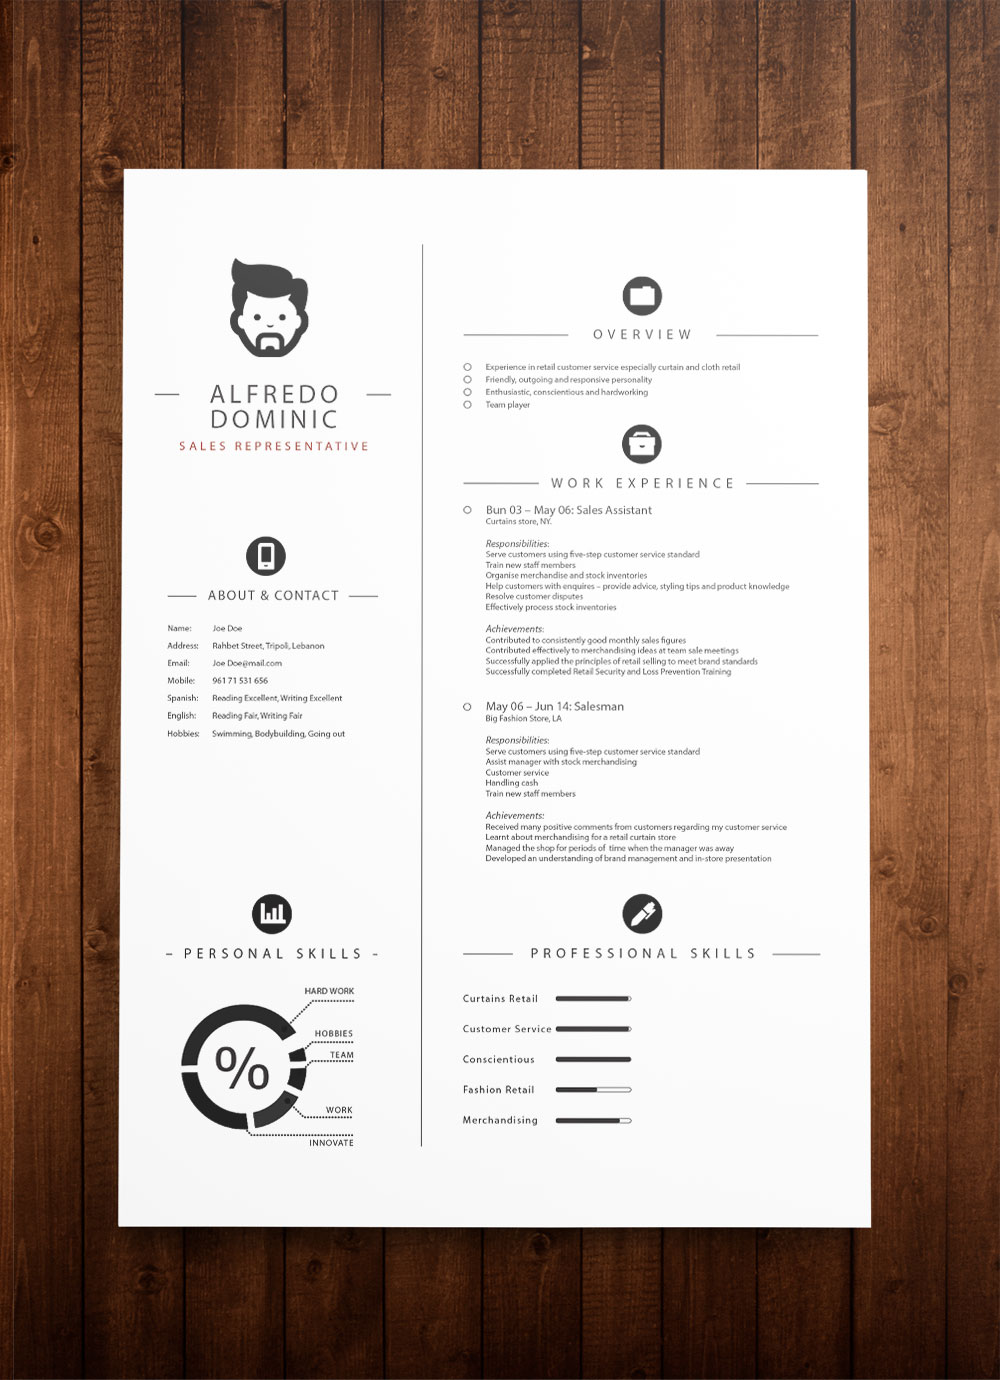 editable cv format download psd file free download - Top Free Resume Templates